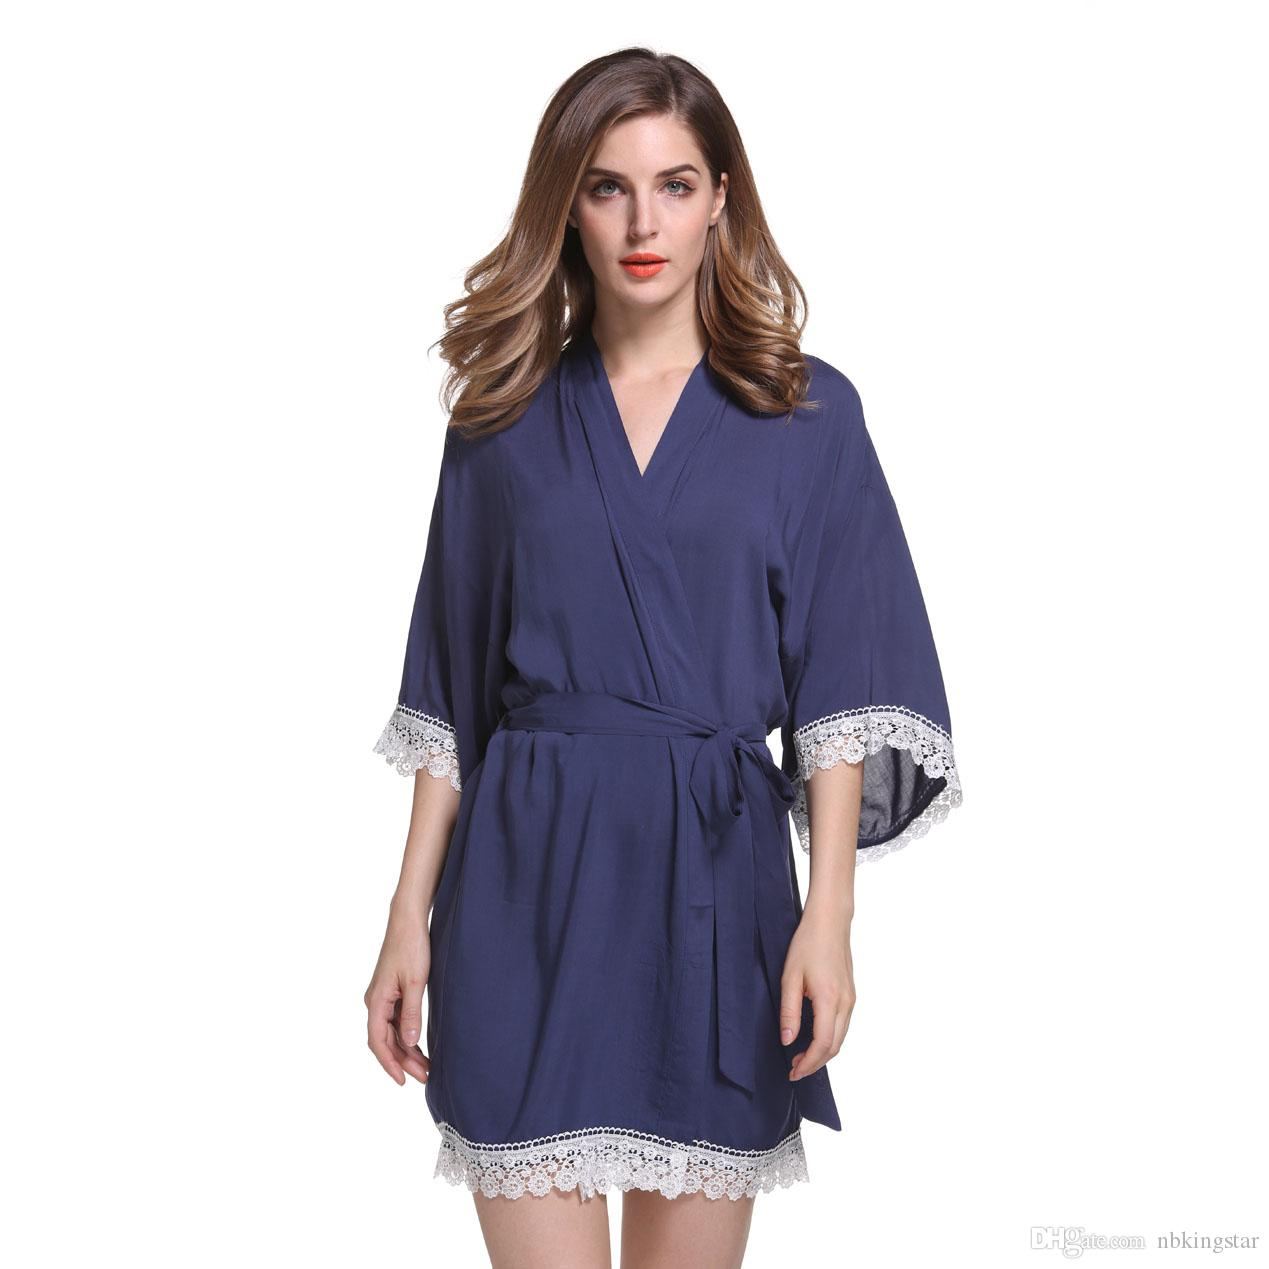 ccbc93a77d 2019 New Solid Cotton Kimono Robes With Lace Trim Women Wedding Bridal Robe  Short Belt Bathrobe Sleepwear From Nbkingstar